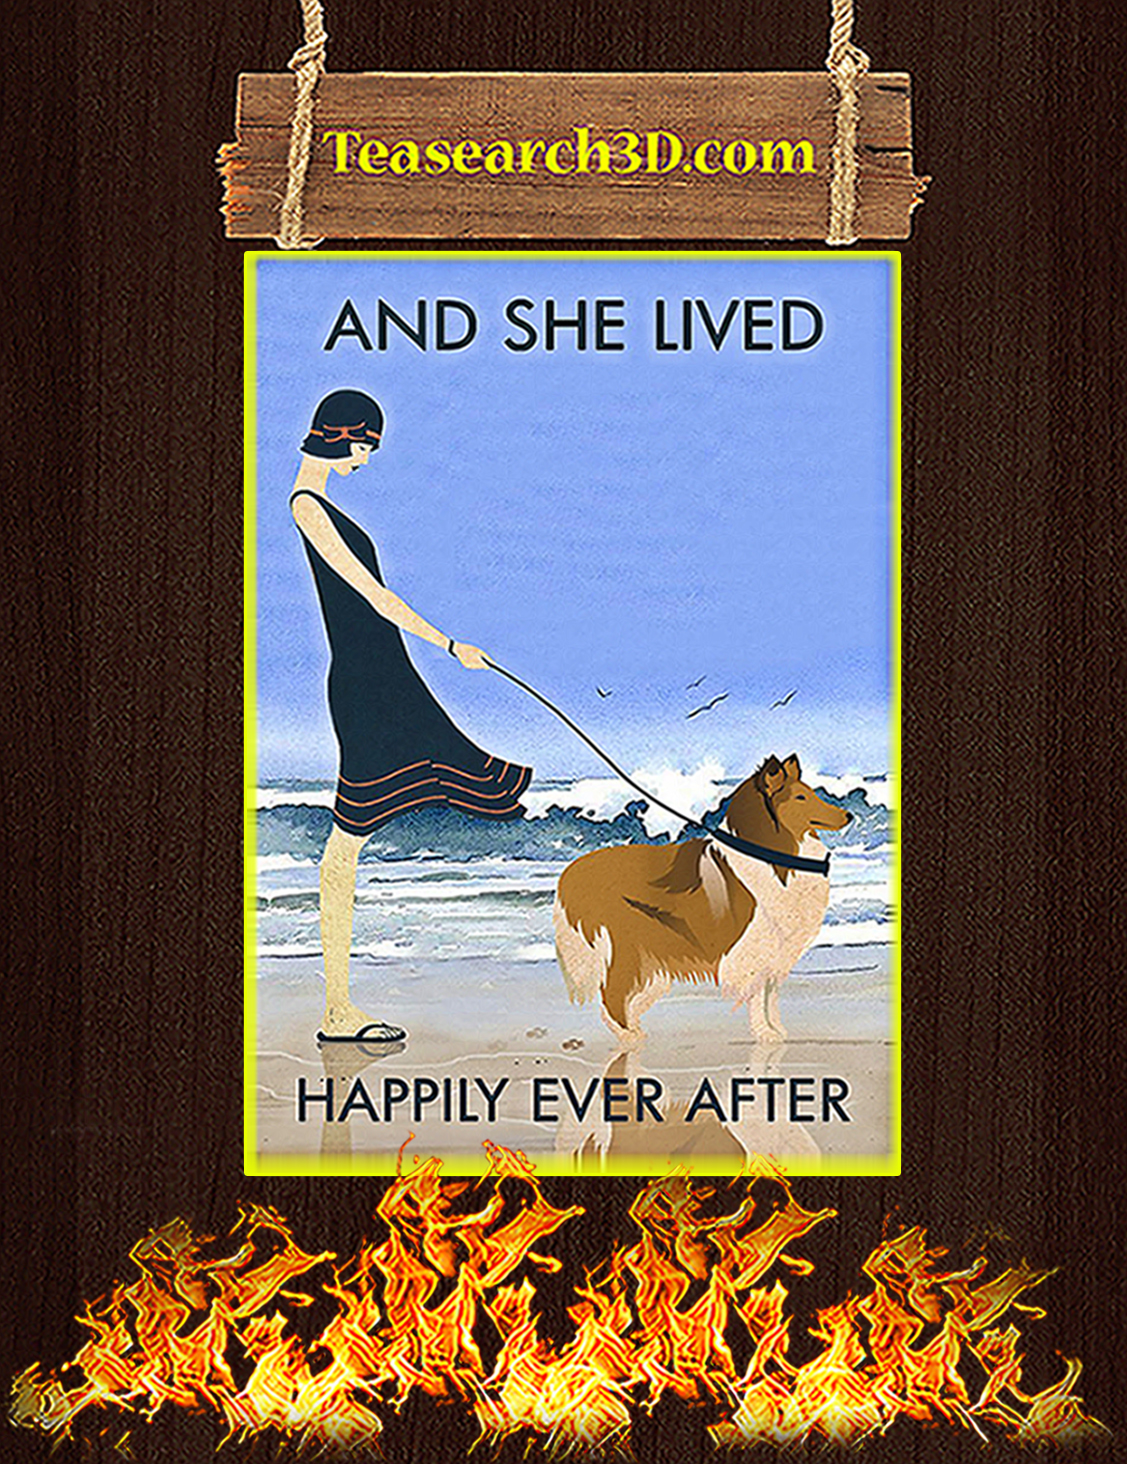 Beach and collie dog and she lived happily ever after poster A3